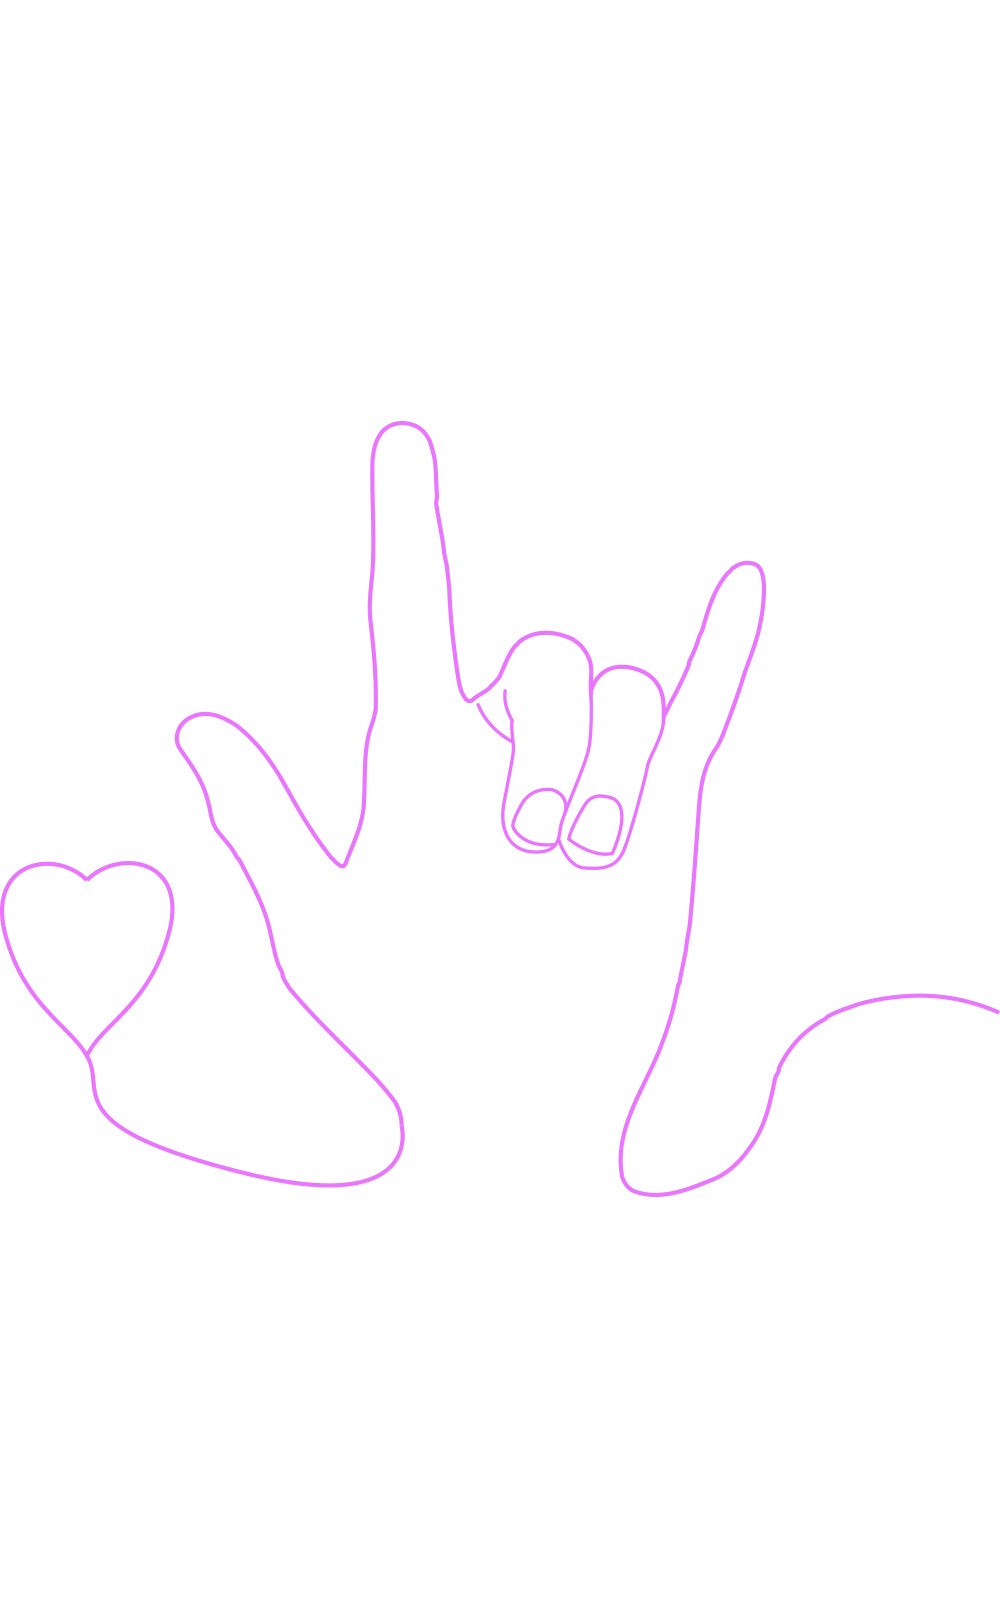 Right-handed sign language for 'I love you' , white background